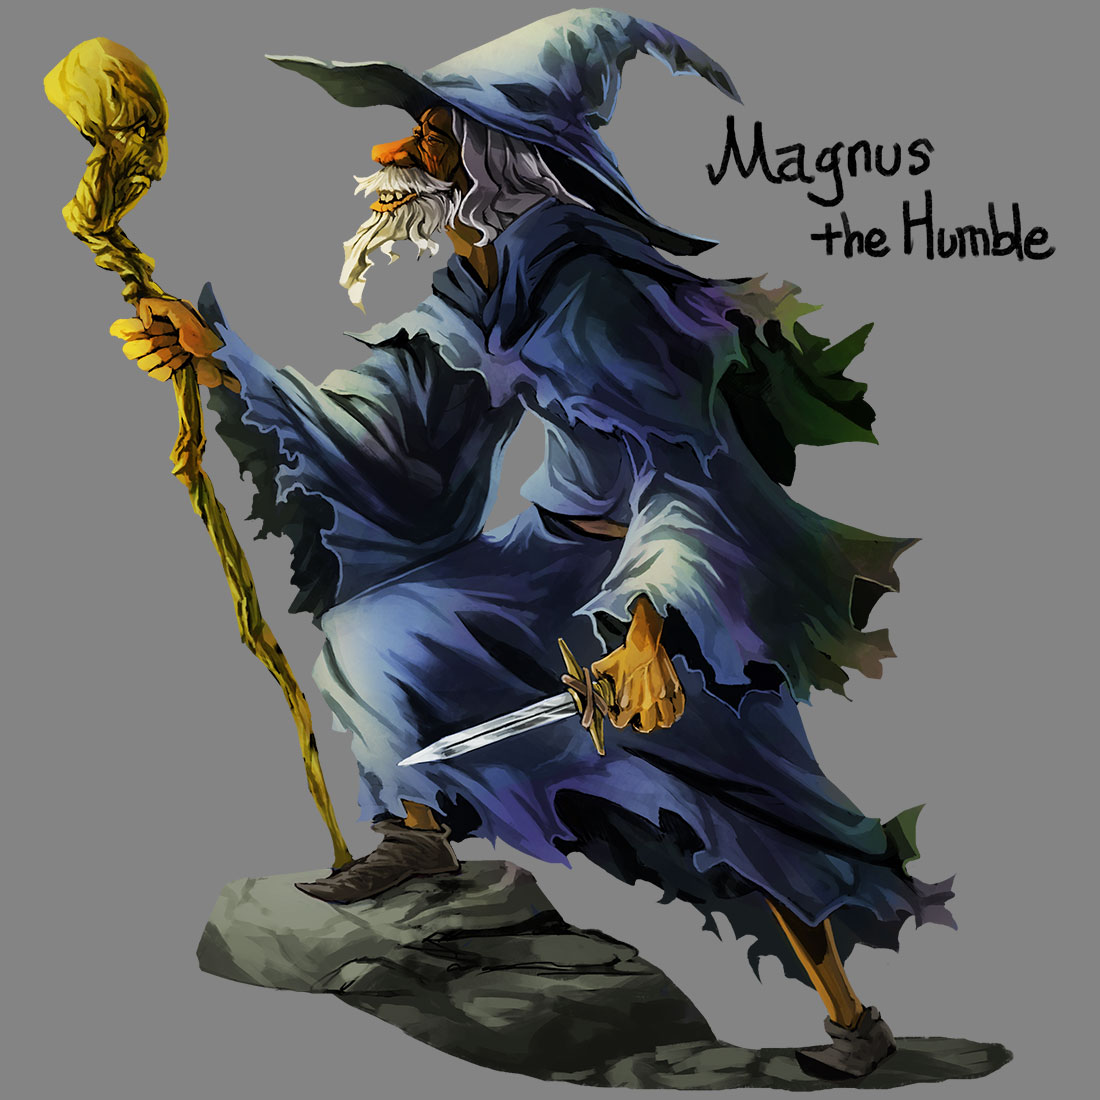 Magnus the Humble